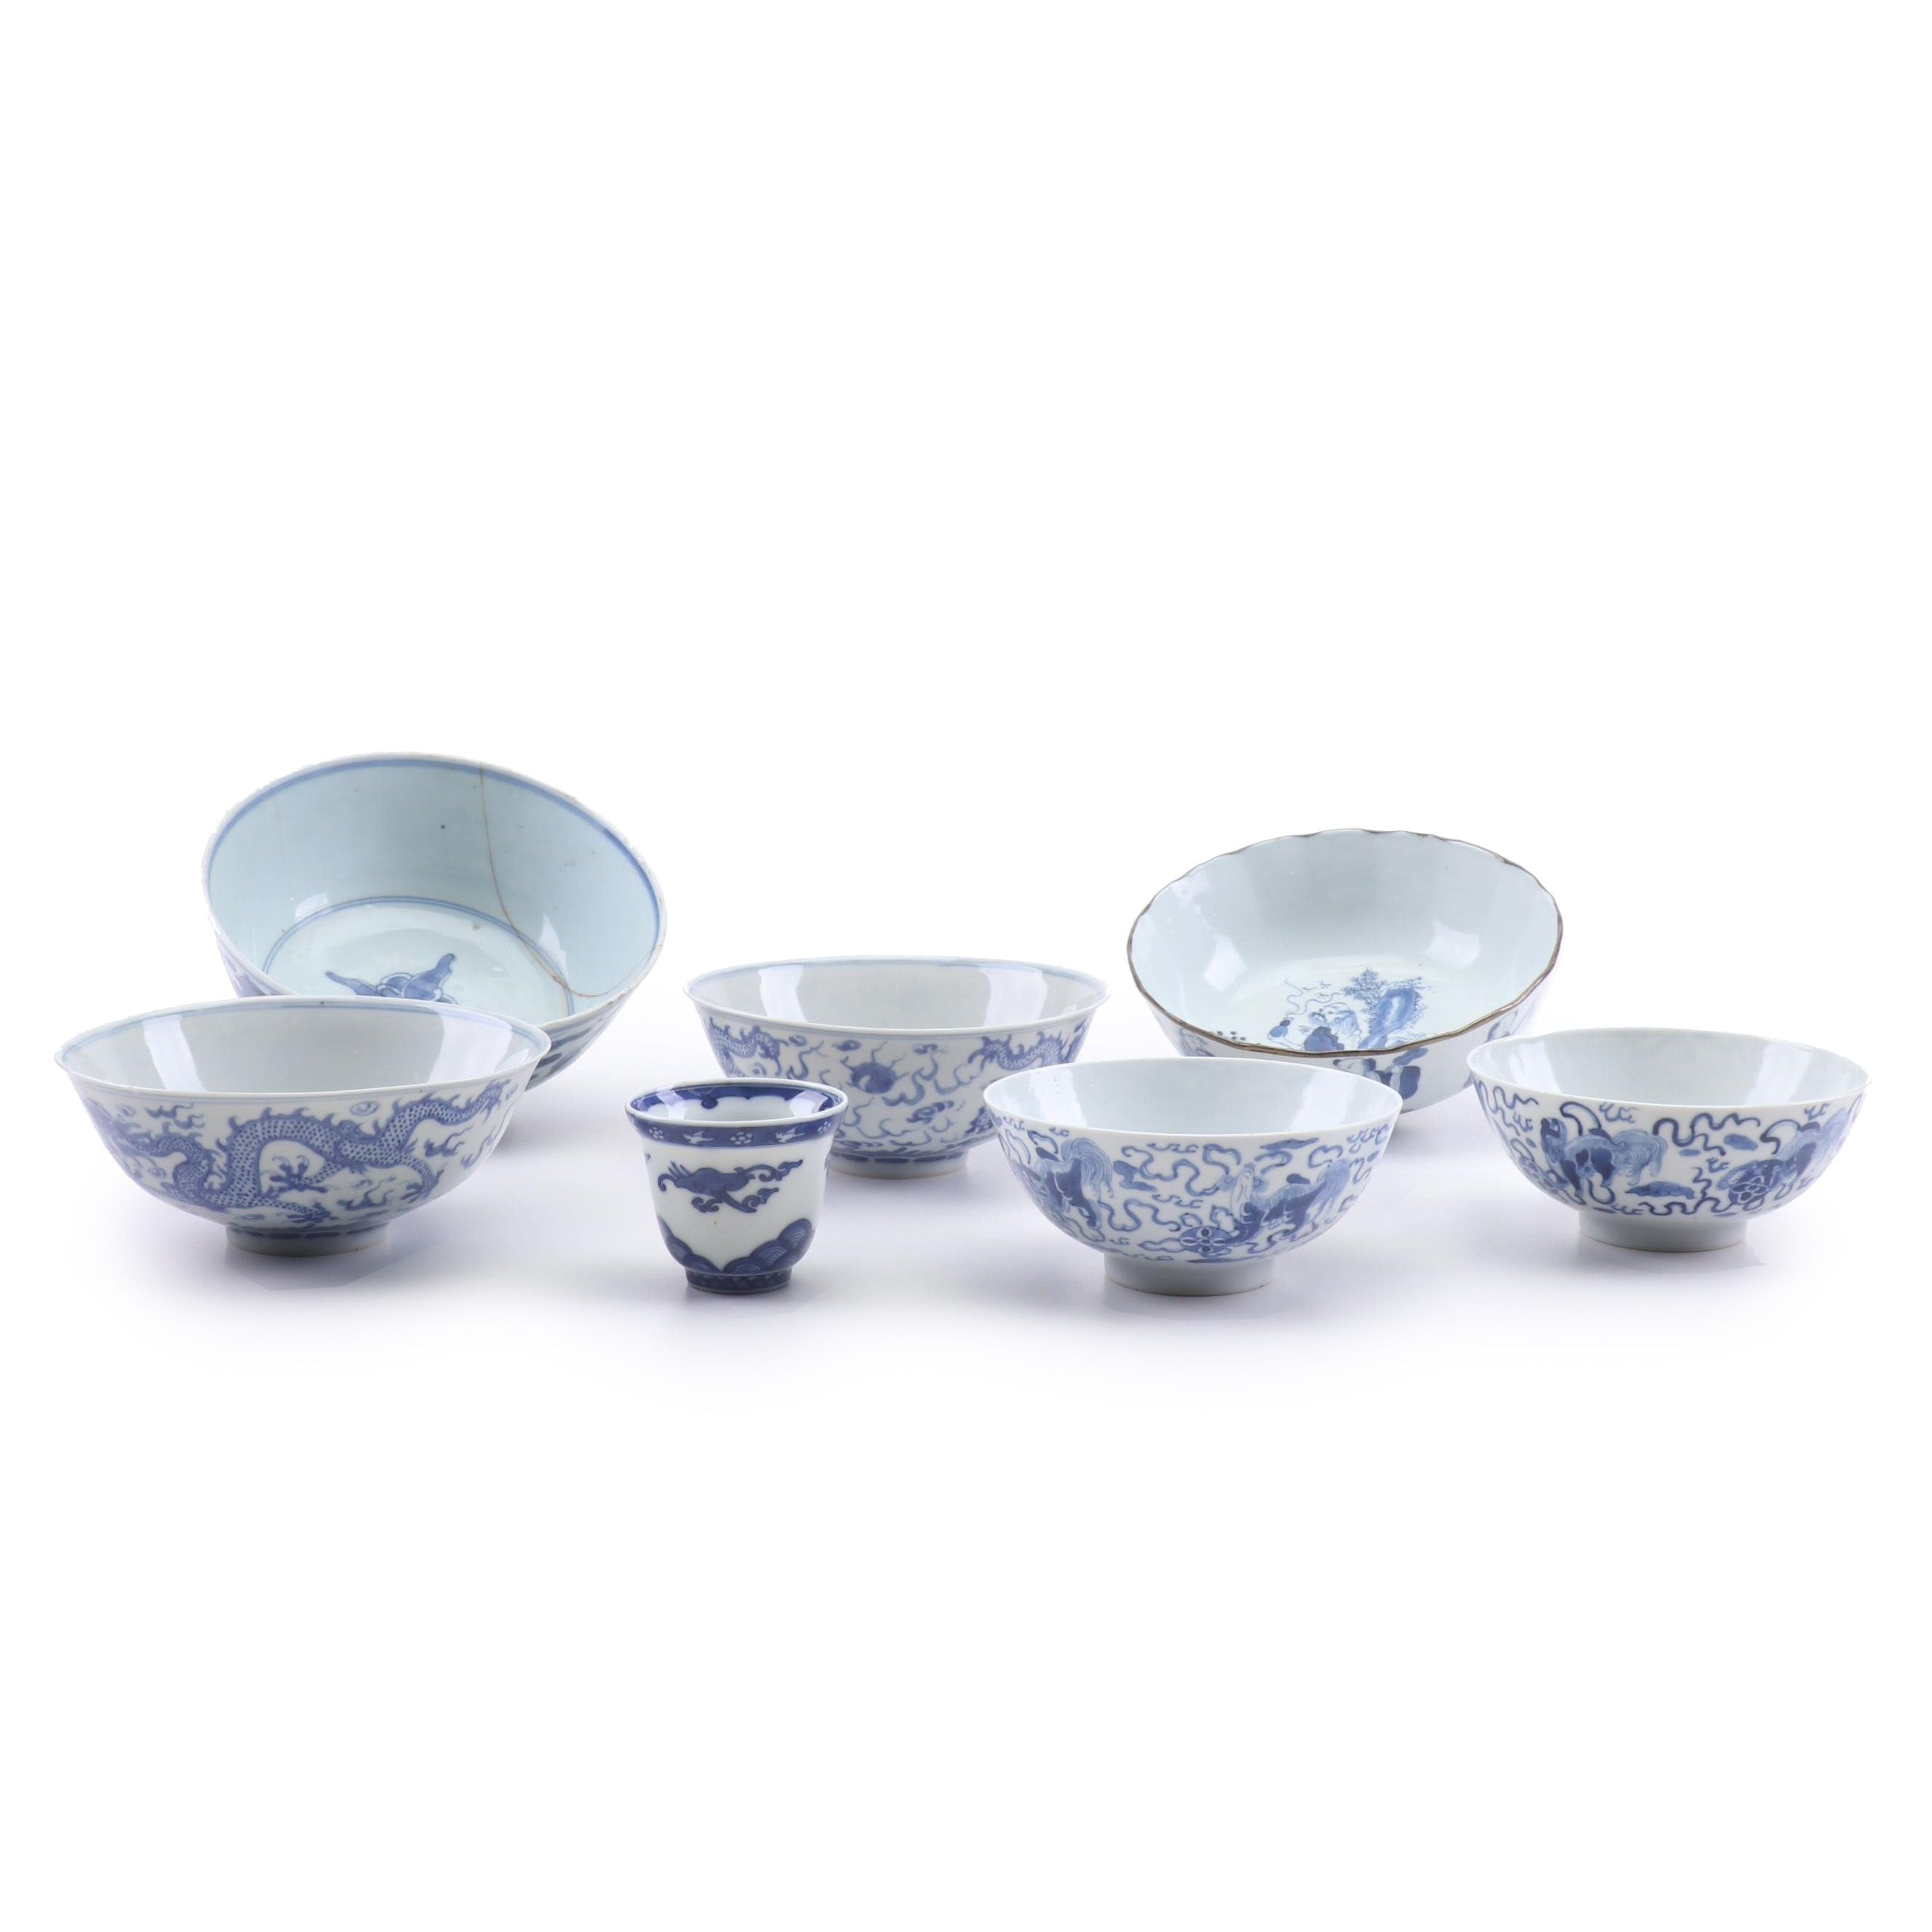 East Asian Blue and White Decorated Porcelain Bowls, 19th and 20th Century